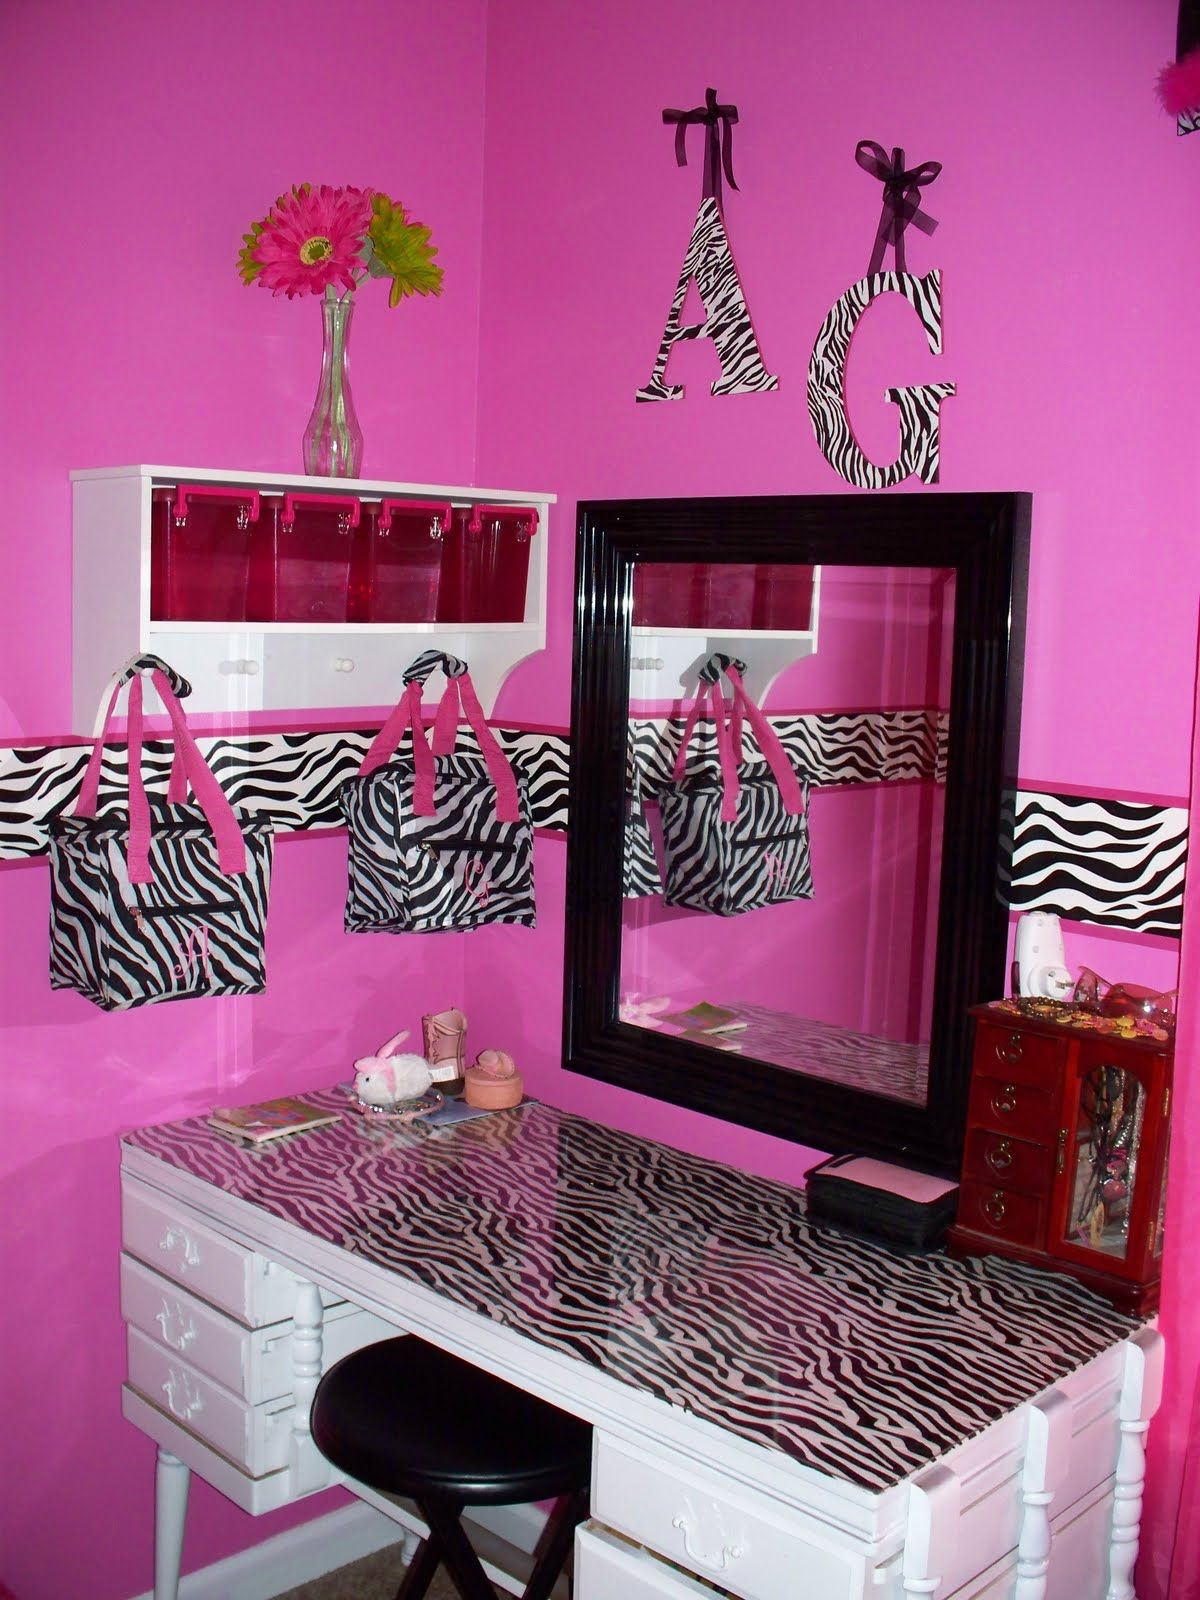 Leopard Print Bedroom Accessories New Zebra Print Laundry Bin Clothes Storage W Handles Girls Dorm